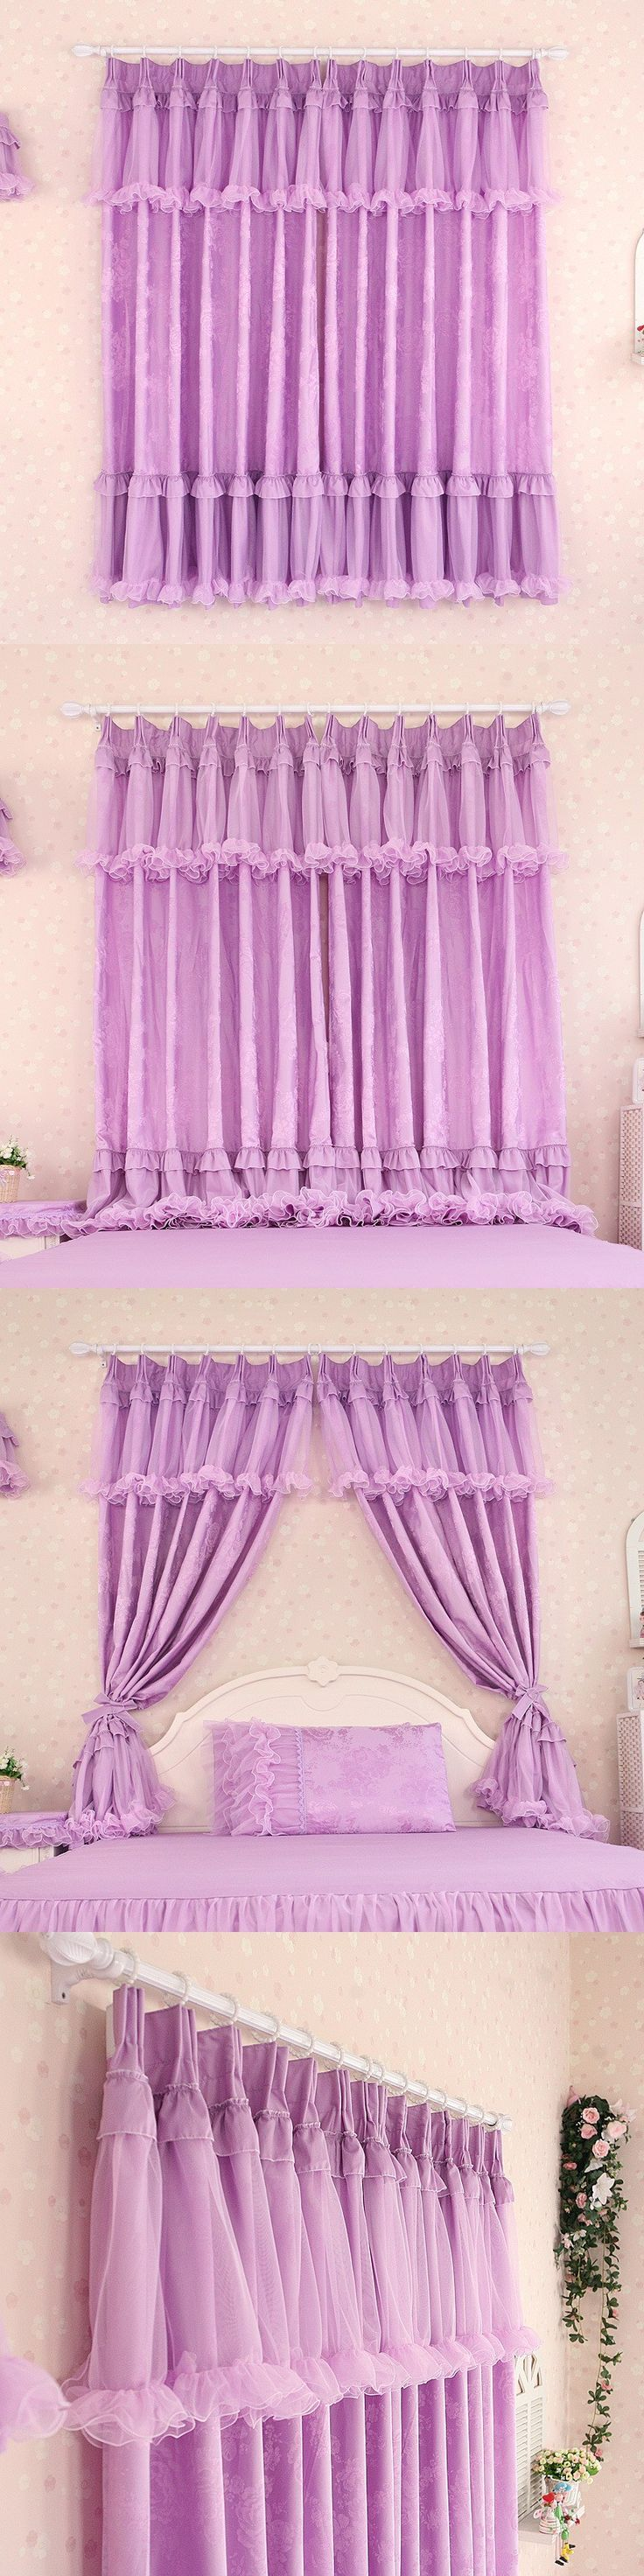 Purple Curtains For Living Room The 25 Best Ideas About Purple Curtains On Pinterest Purple